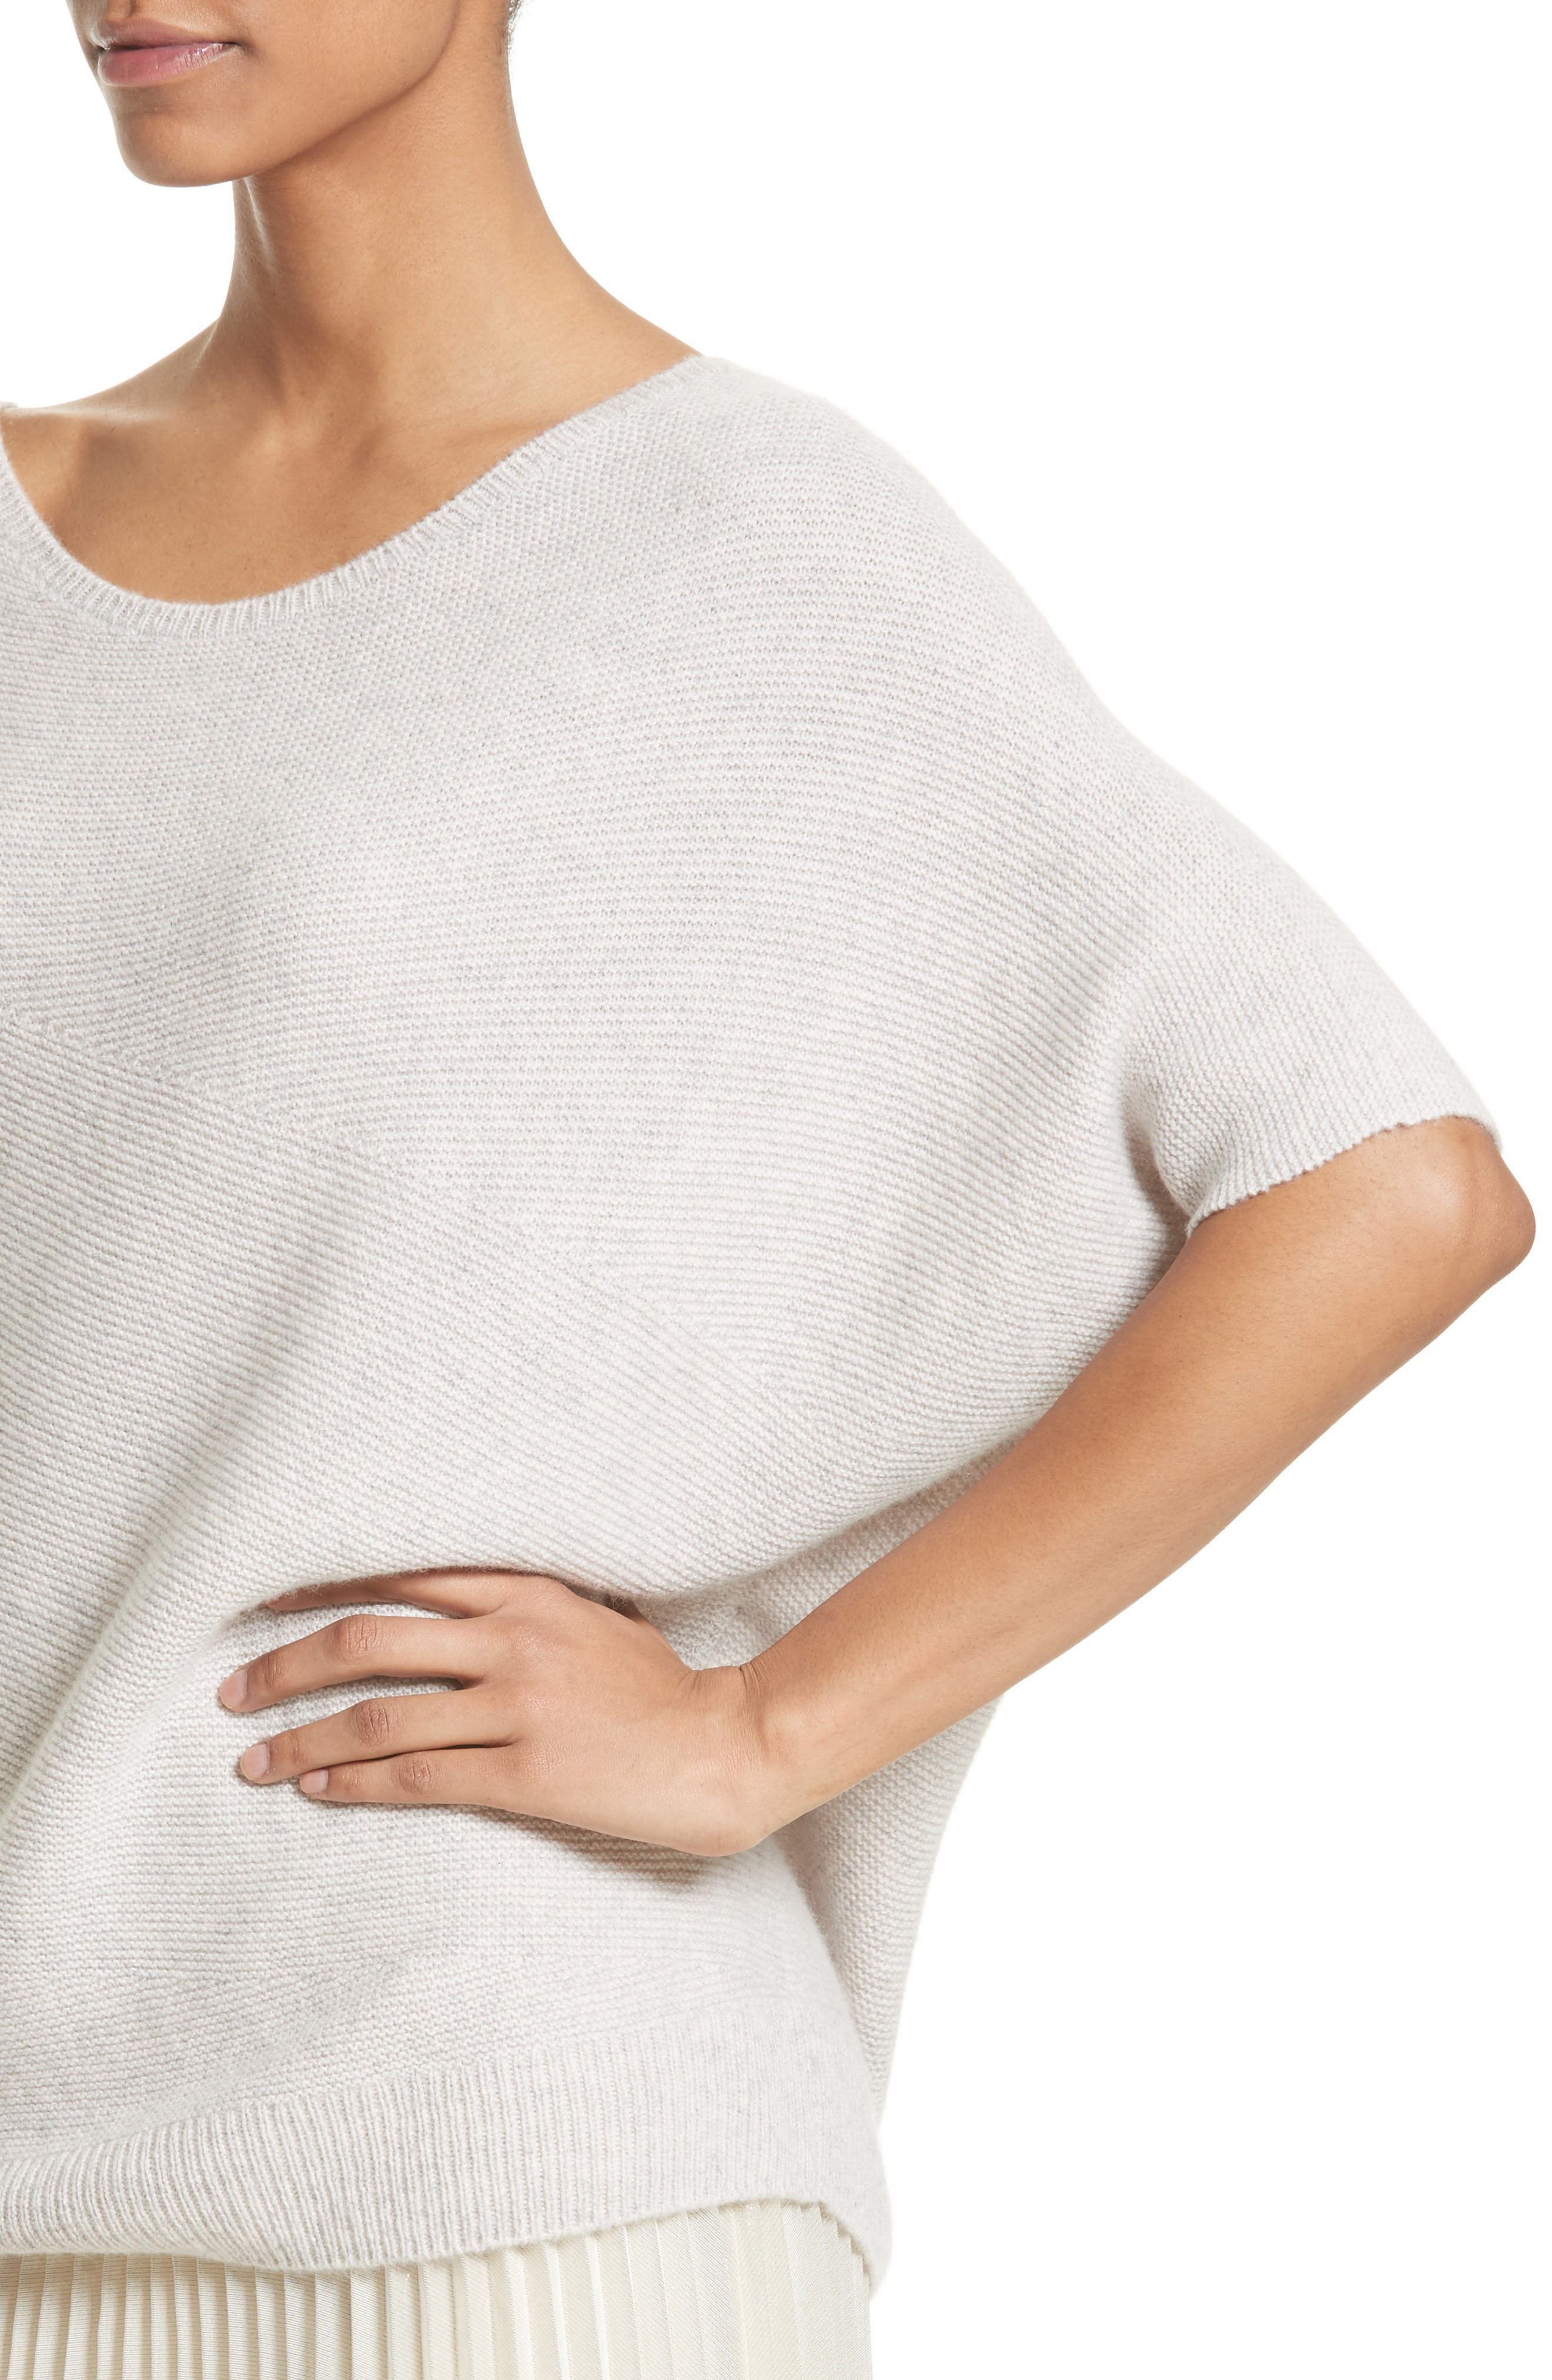 Cashmere Asymmetrical Sweater,                             Alternate thumbnail 4, color,                             680